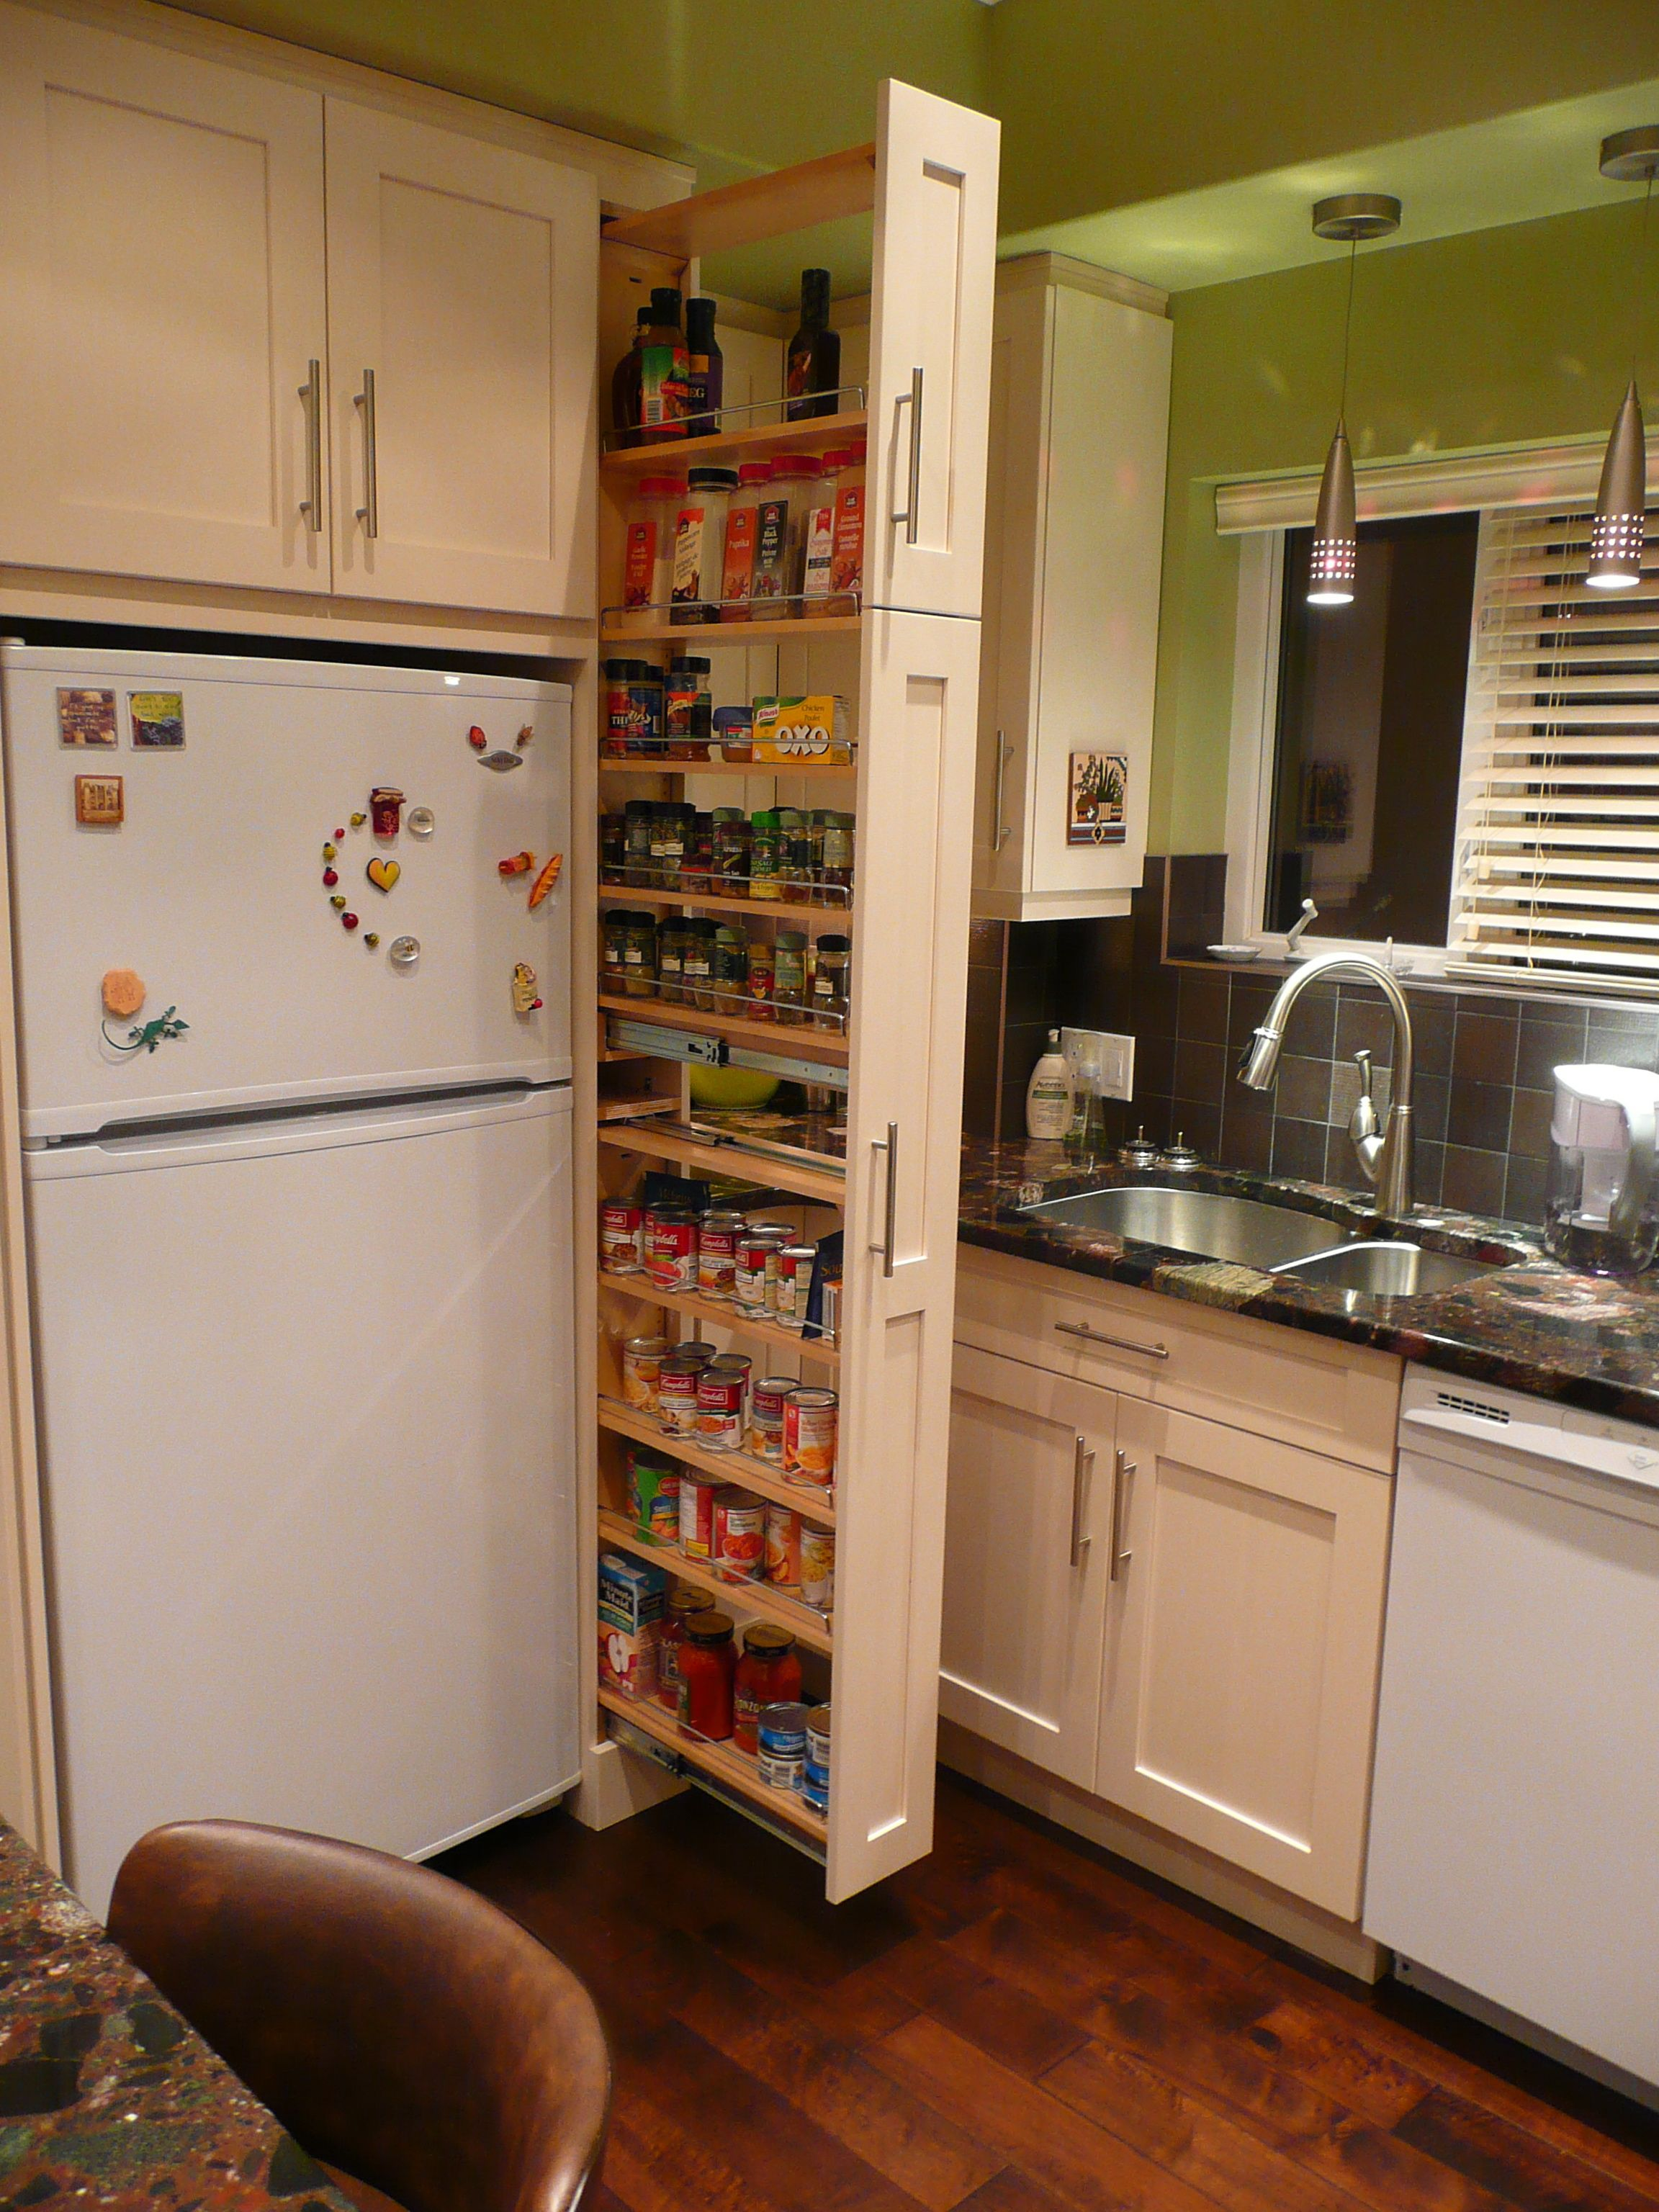 The narrow cabinet beside the fridge pulls out to reveal a for Narrow cabinet ideas